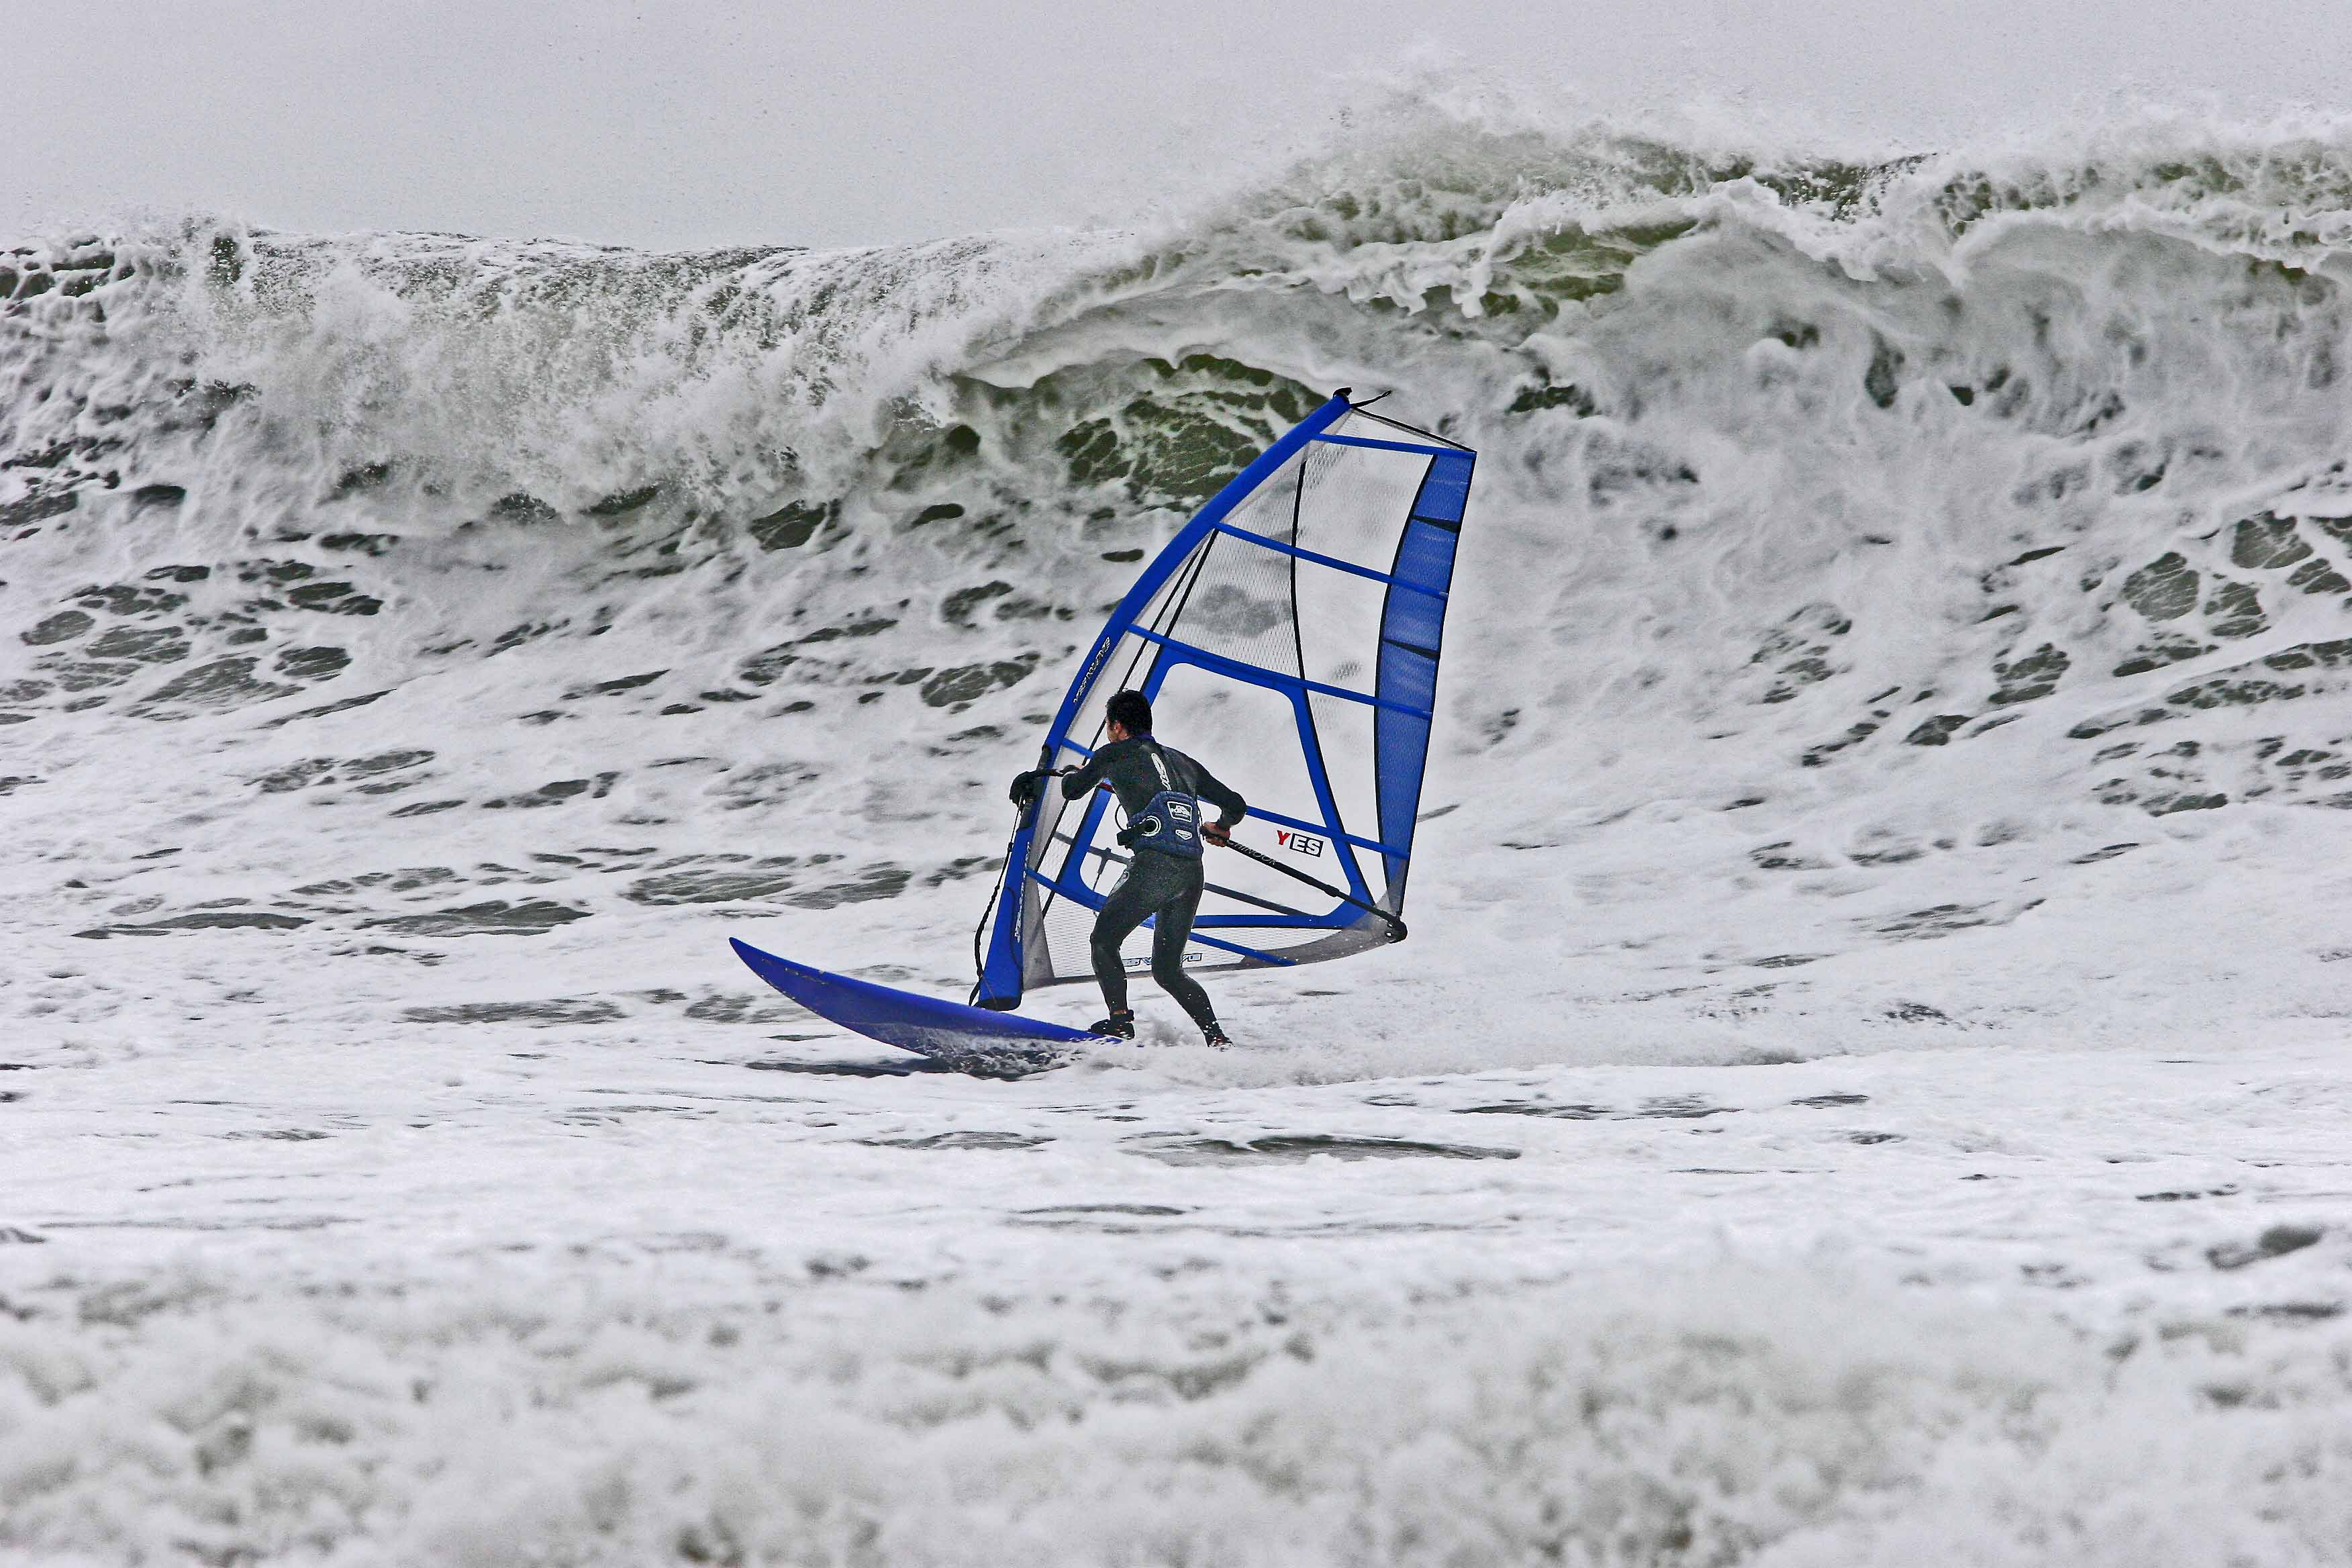 Windsurfing Photography Arty53's Blog